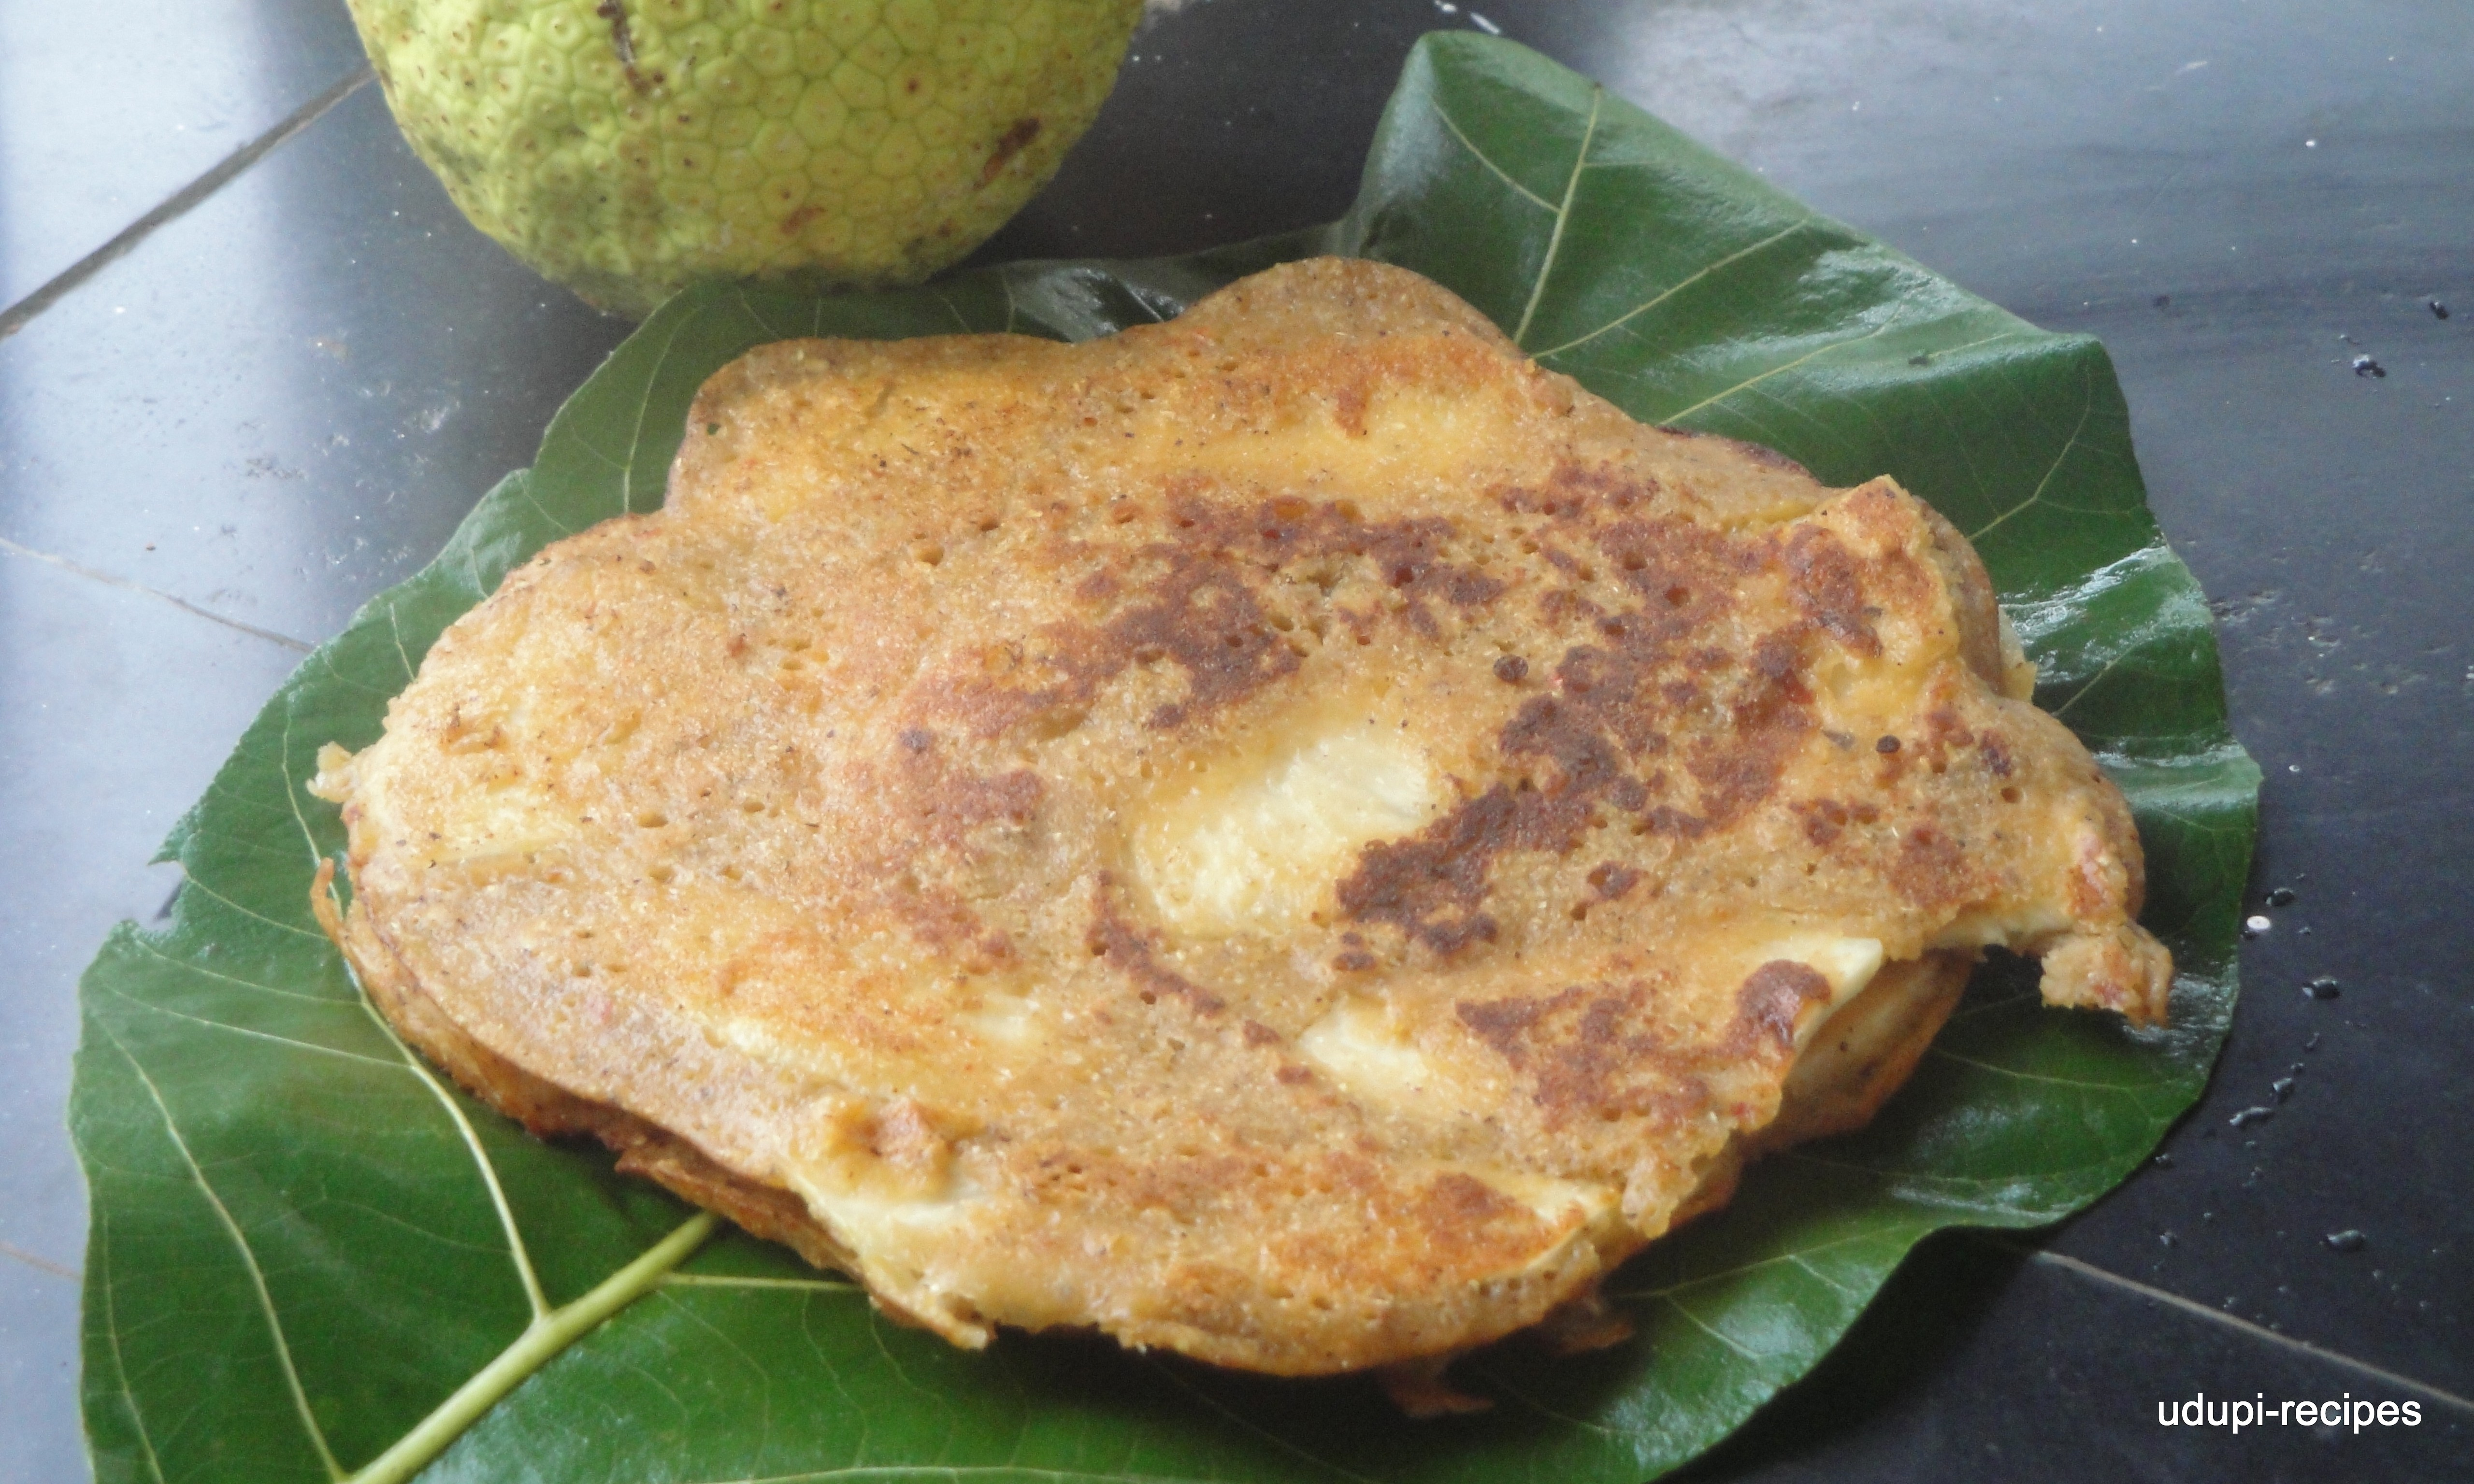 Breadfruit recipes-Breadfruit dosa recipe